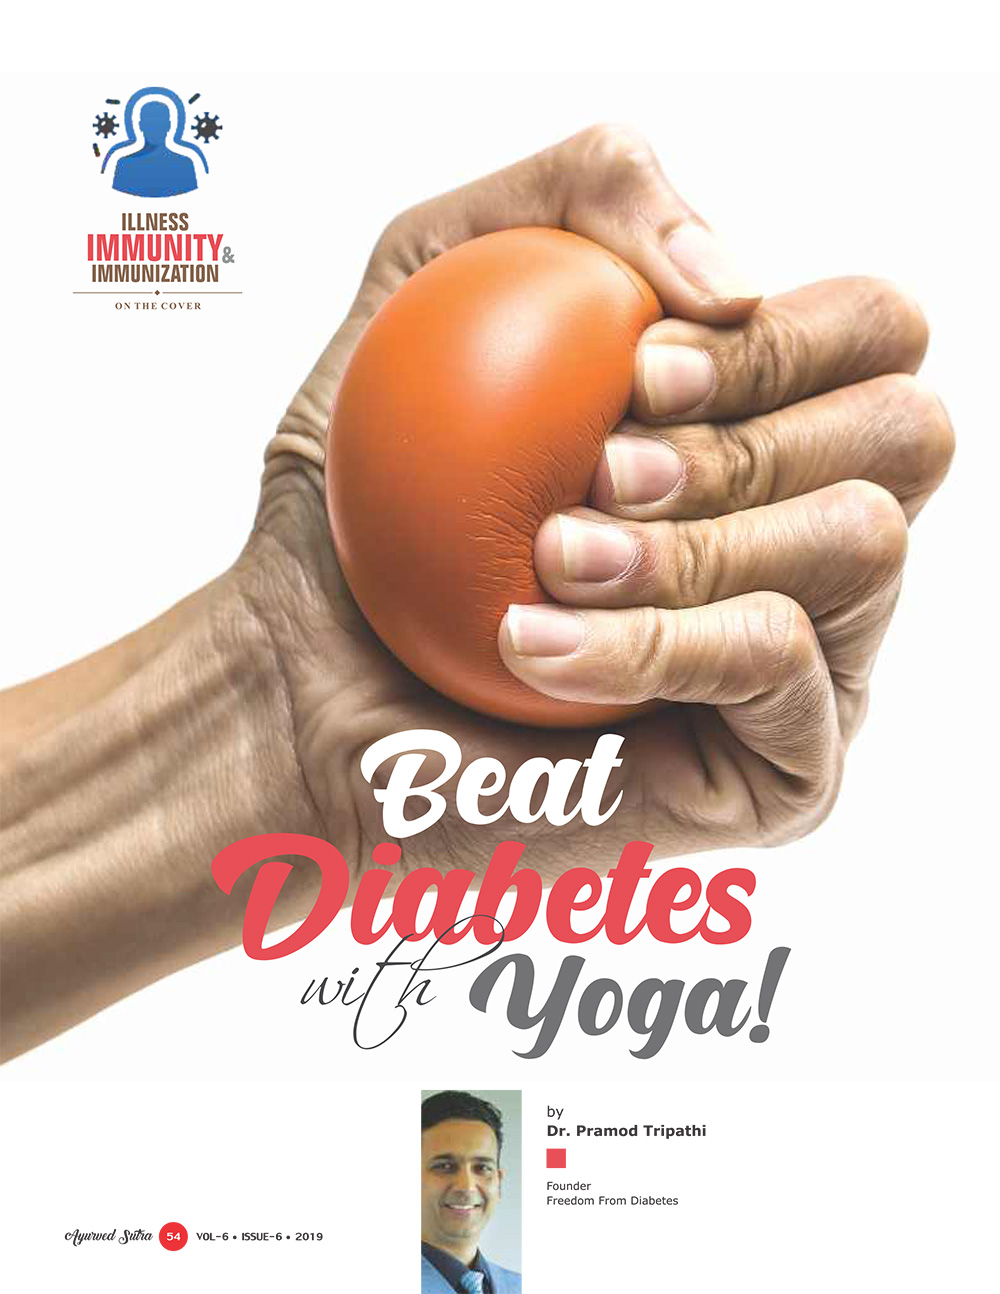 Beat Diabetes with Yoga!